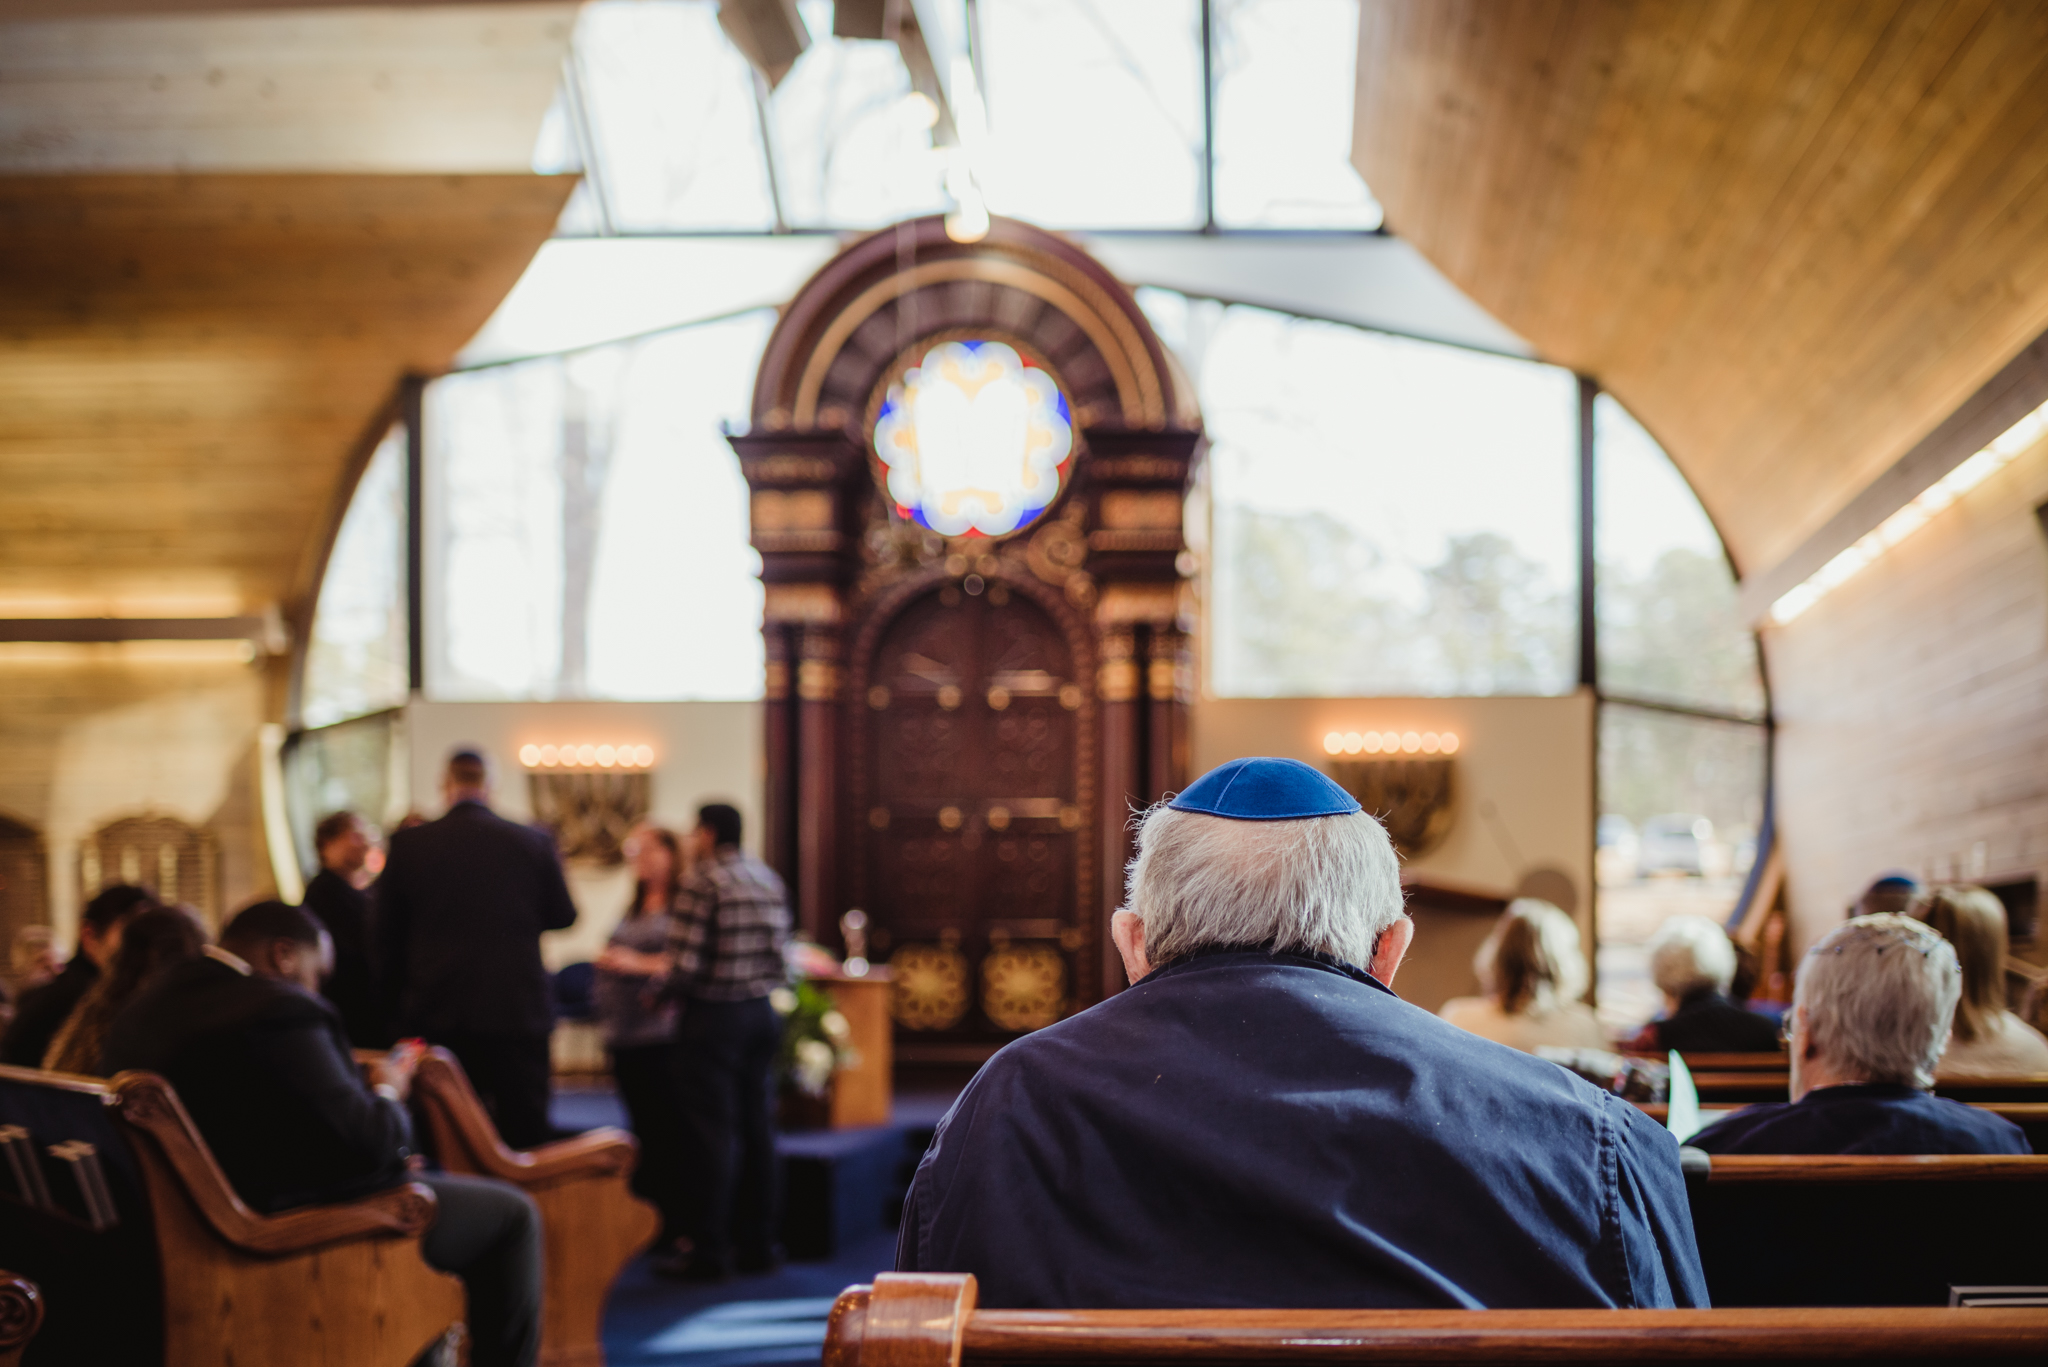 A man waits patiently in the sanctuary at Temple Beth Or while waiting for the bar mitzvah ceremony to begin.